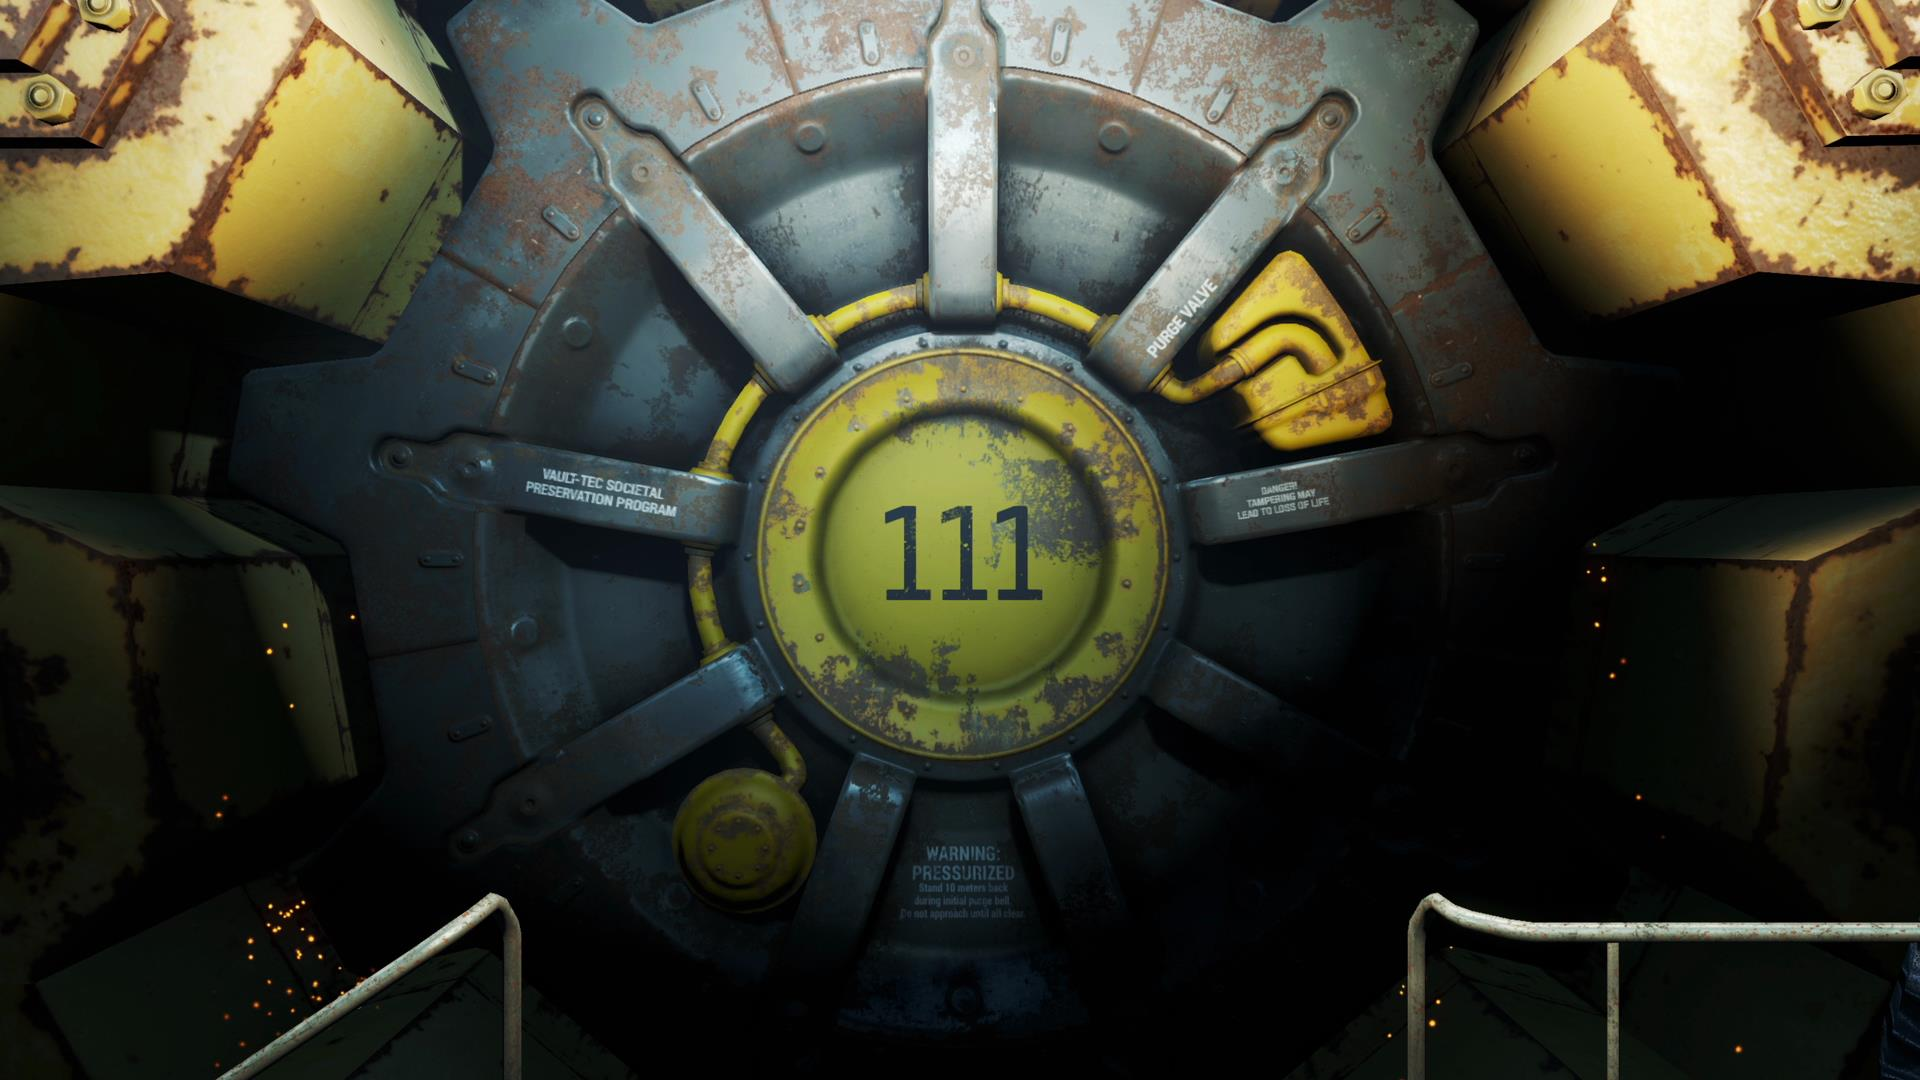 ICXM.net - Fallout 4's download size revealed, more than ...